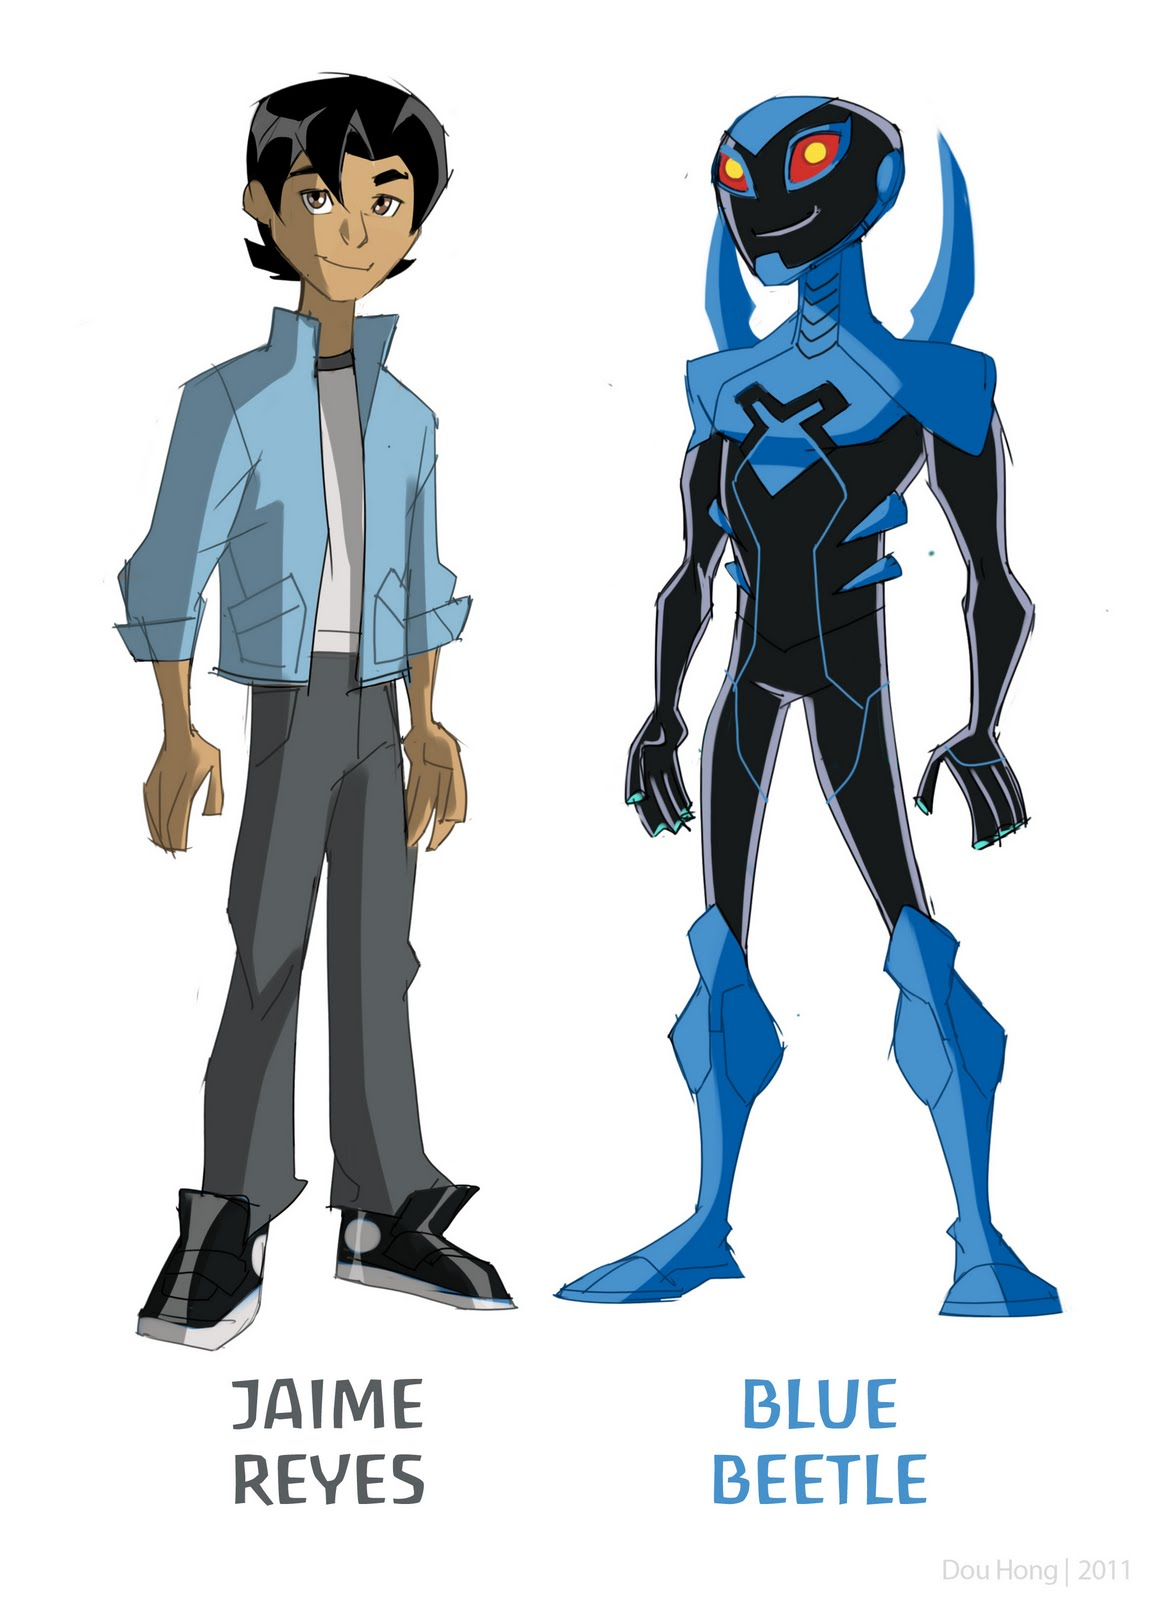 Dou Hong: 79. Blue Beetle Animated